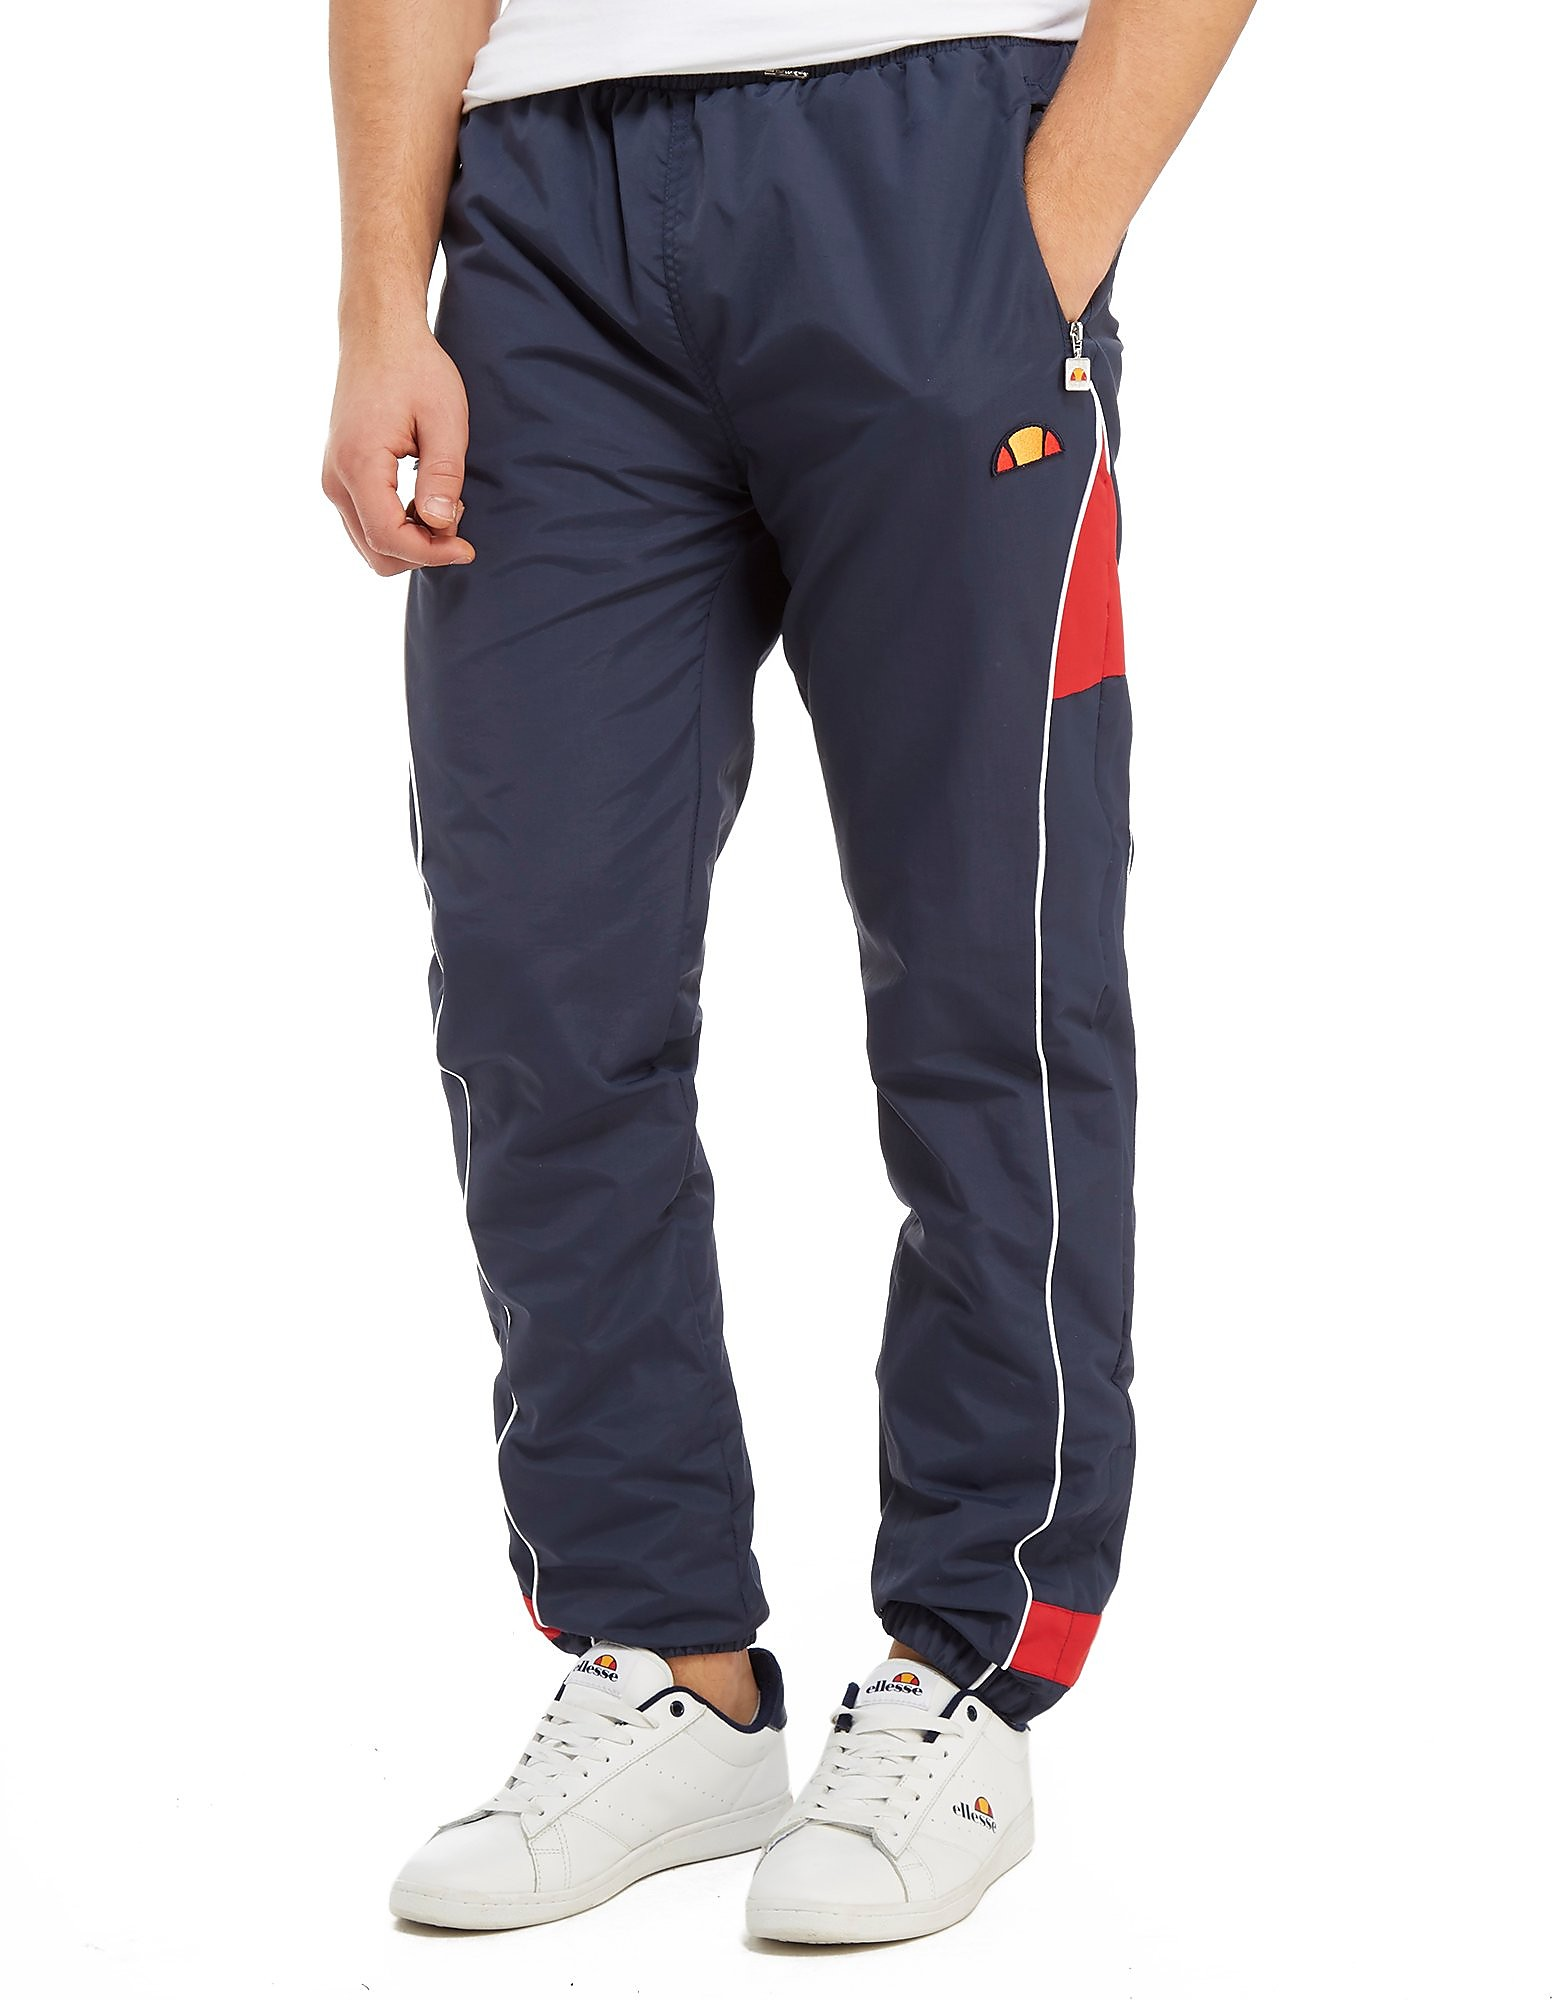 Ellesse Woven Ski Pants - Only at JD - Navy/Red, Navy/Red